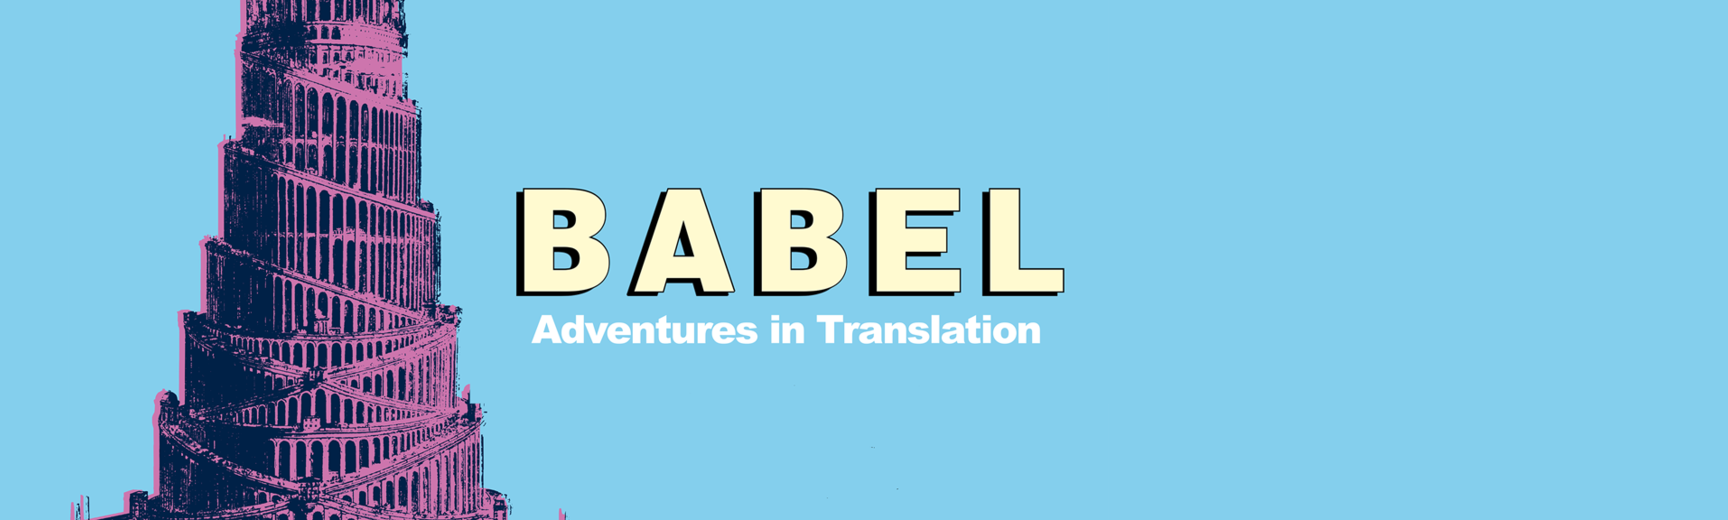 Babel, Adventures in translation exhibition